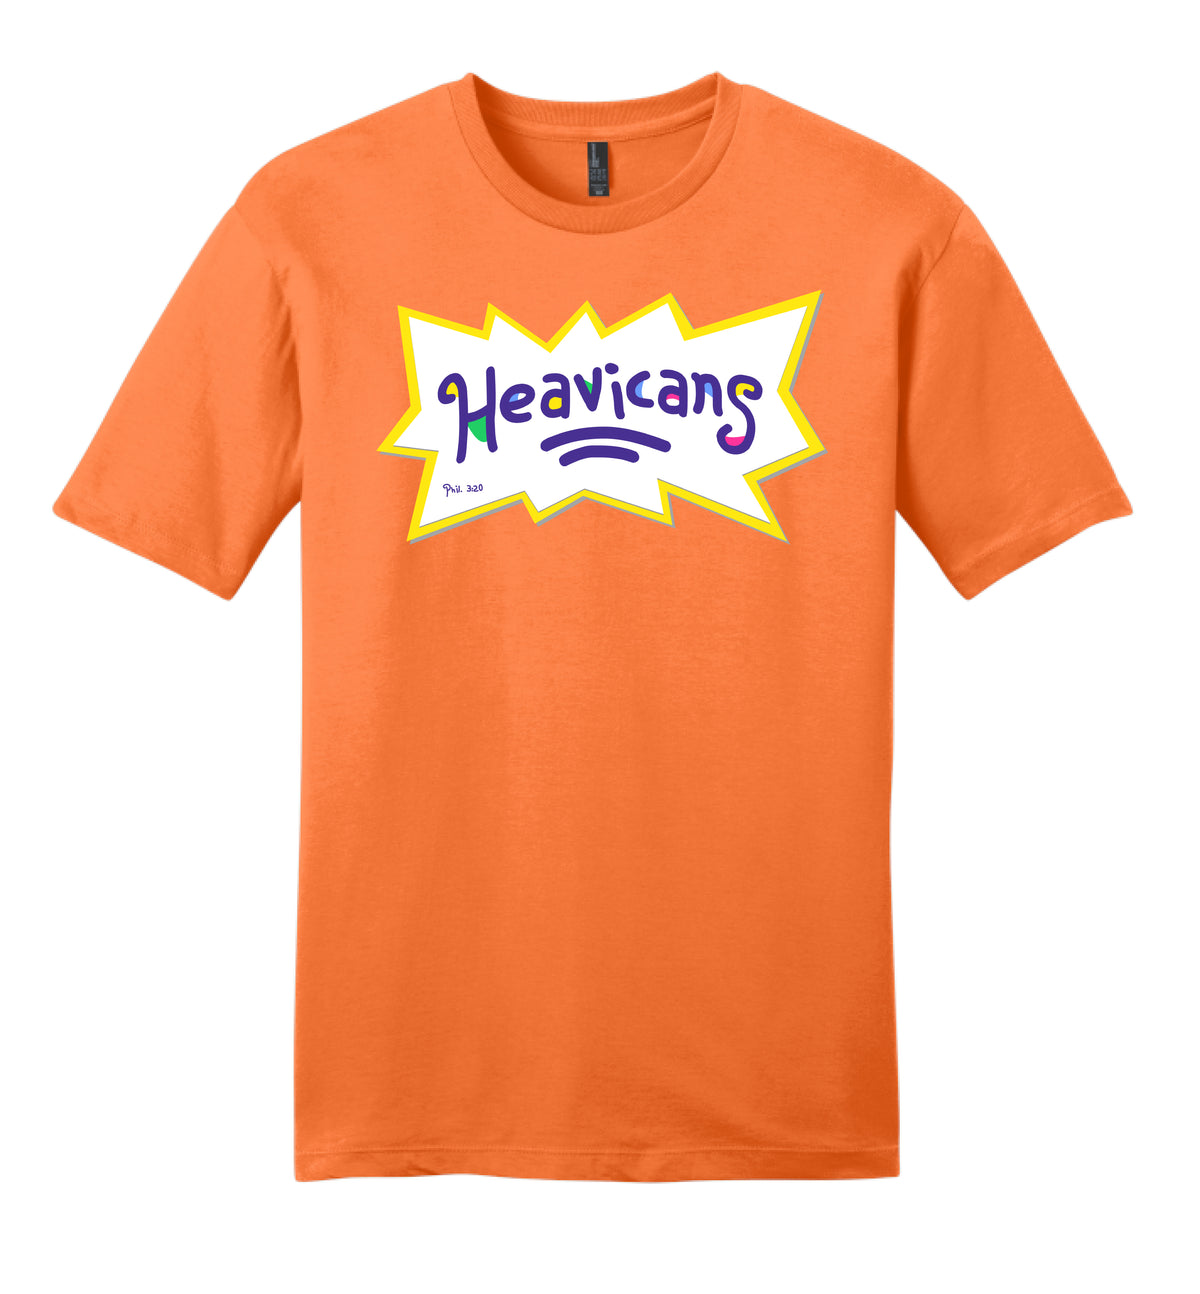 KIDS HEAVICANS THEME TEE